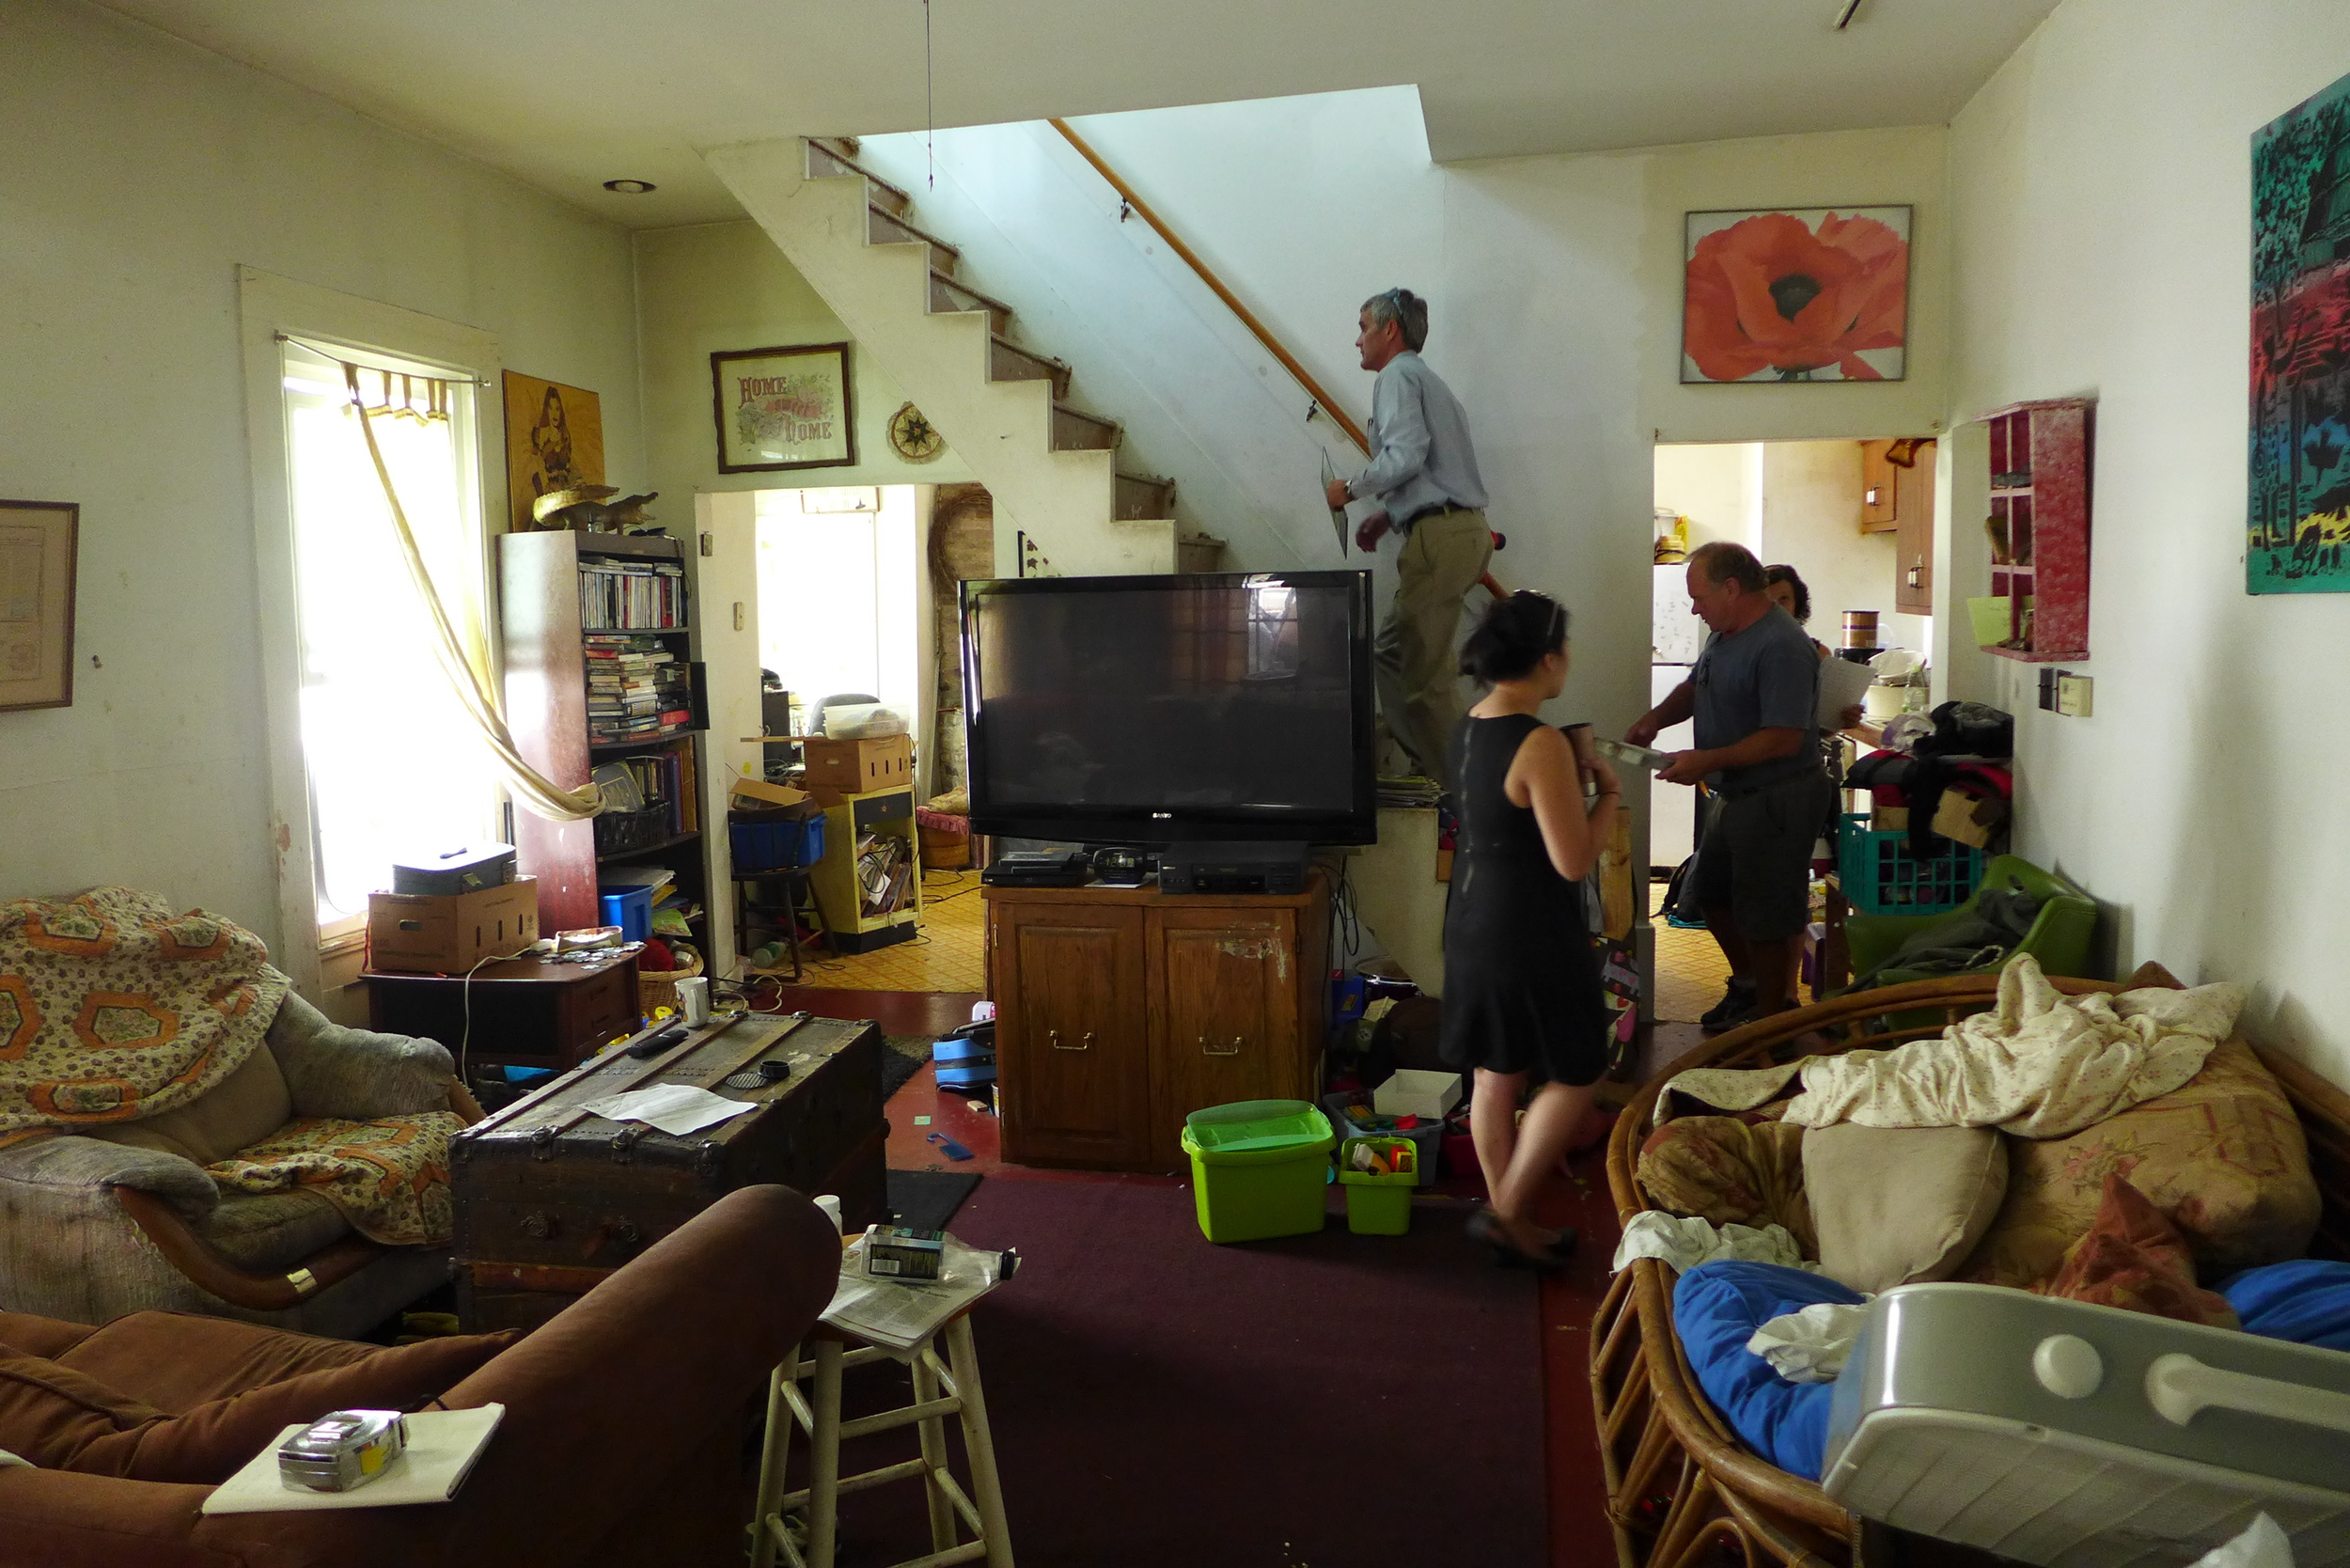 This is the living room. The stench of cat urine nearly bowled us over.